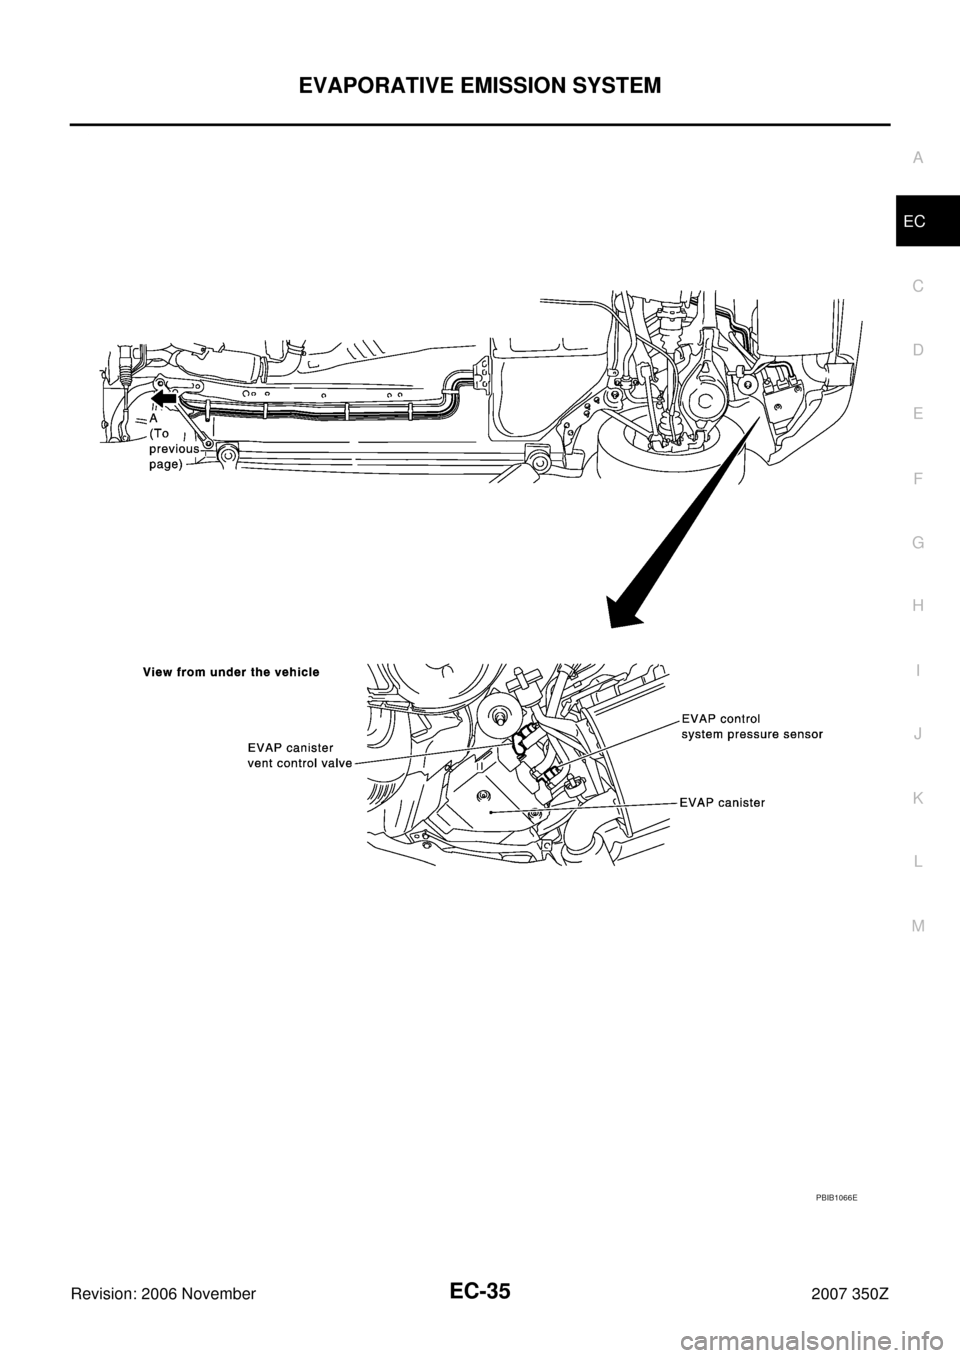 NISSAN 350Z 2007 Z33 Engine Control Workshop Manual